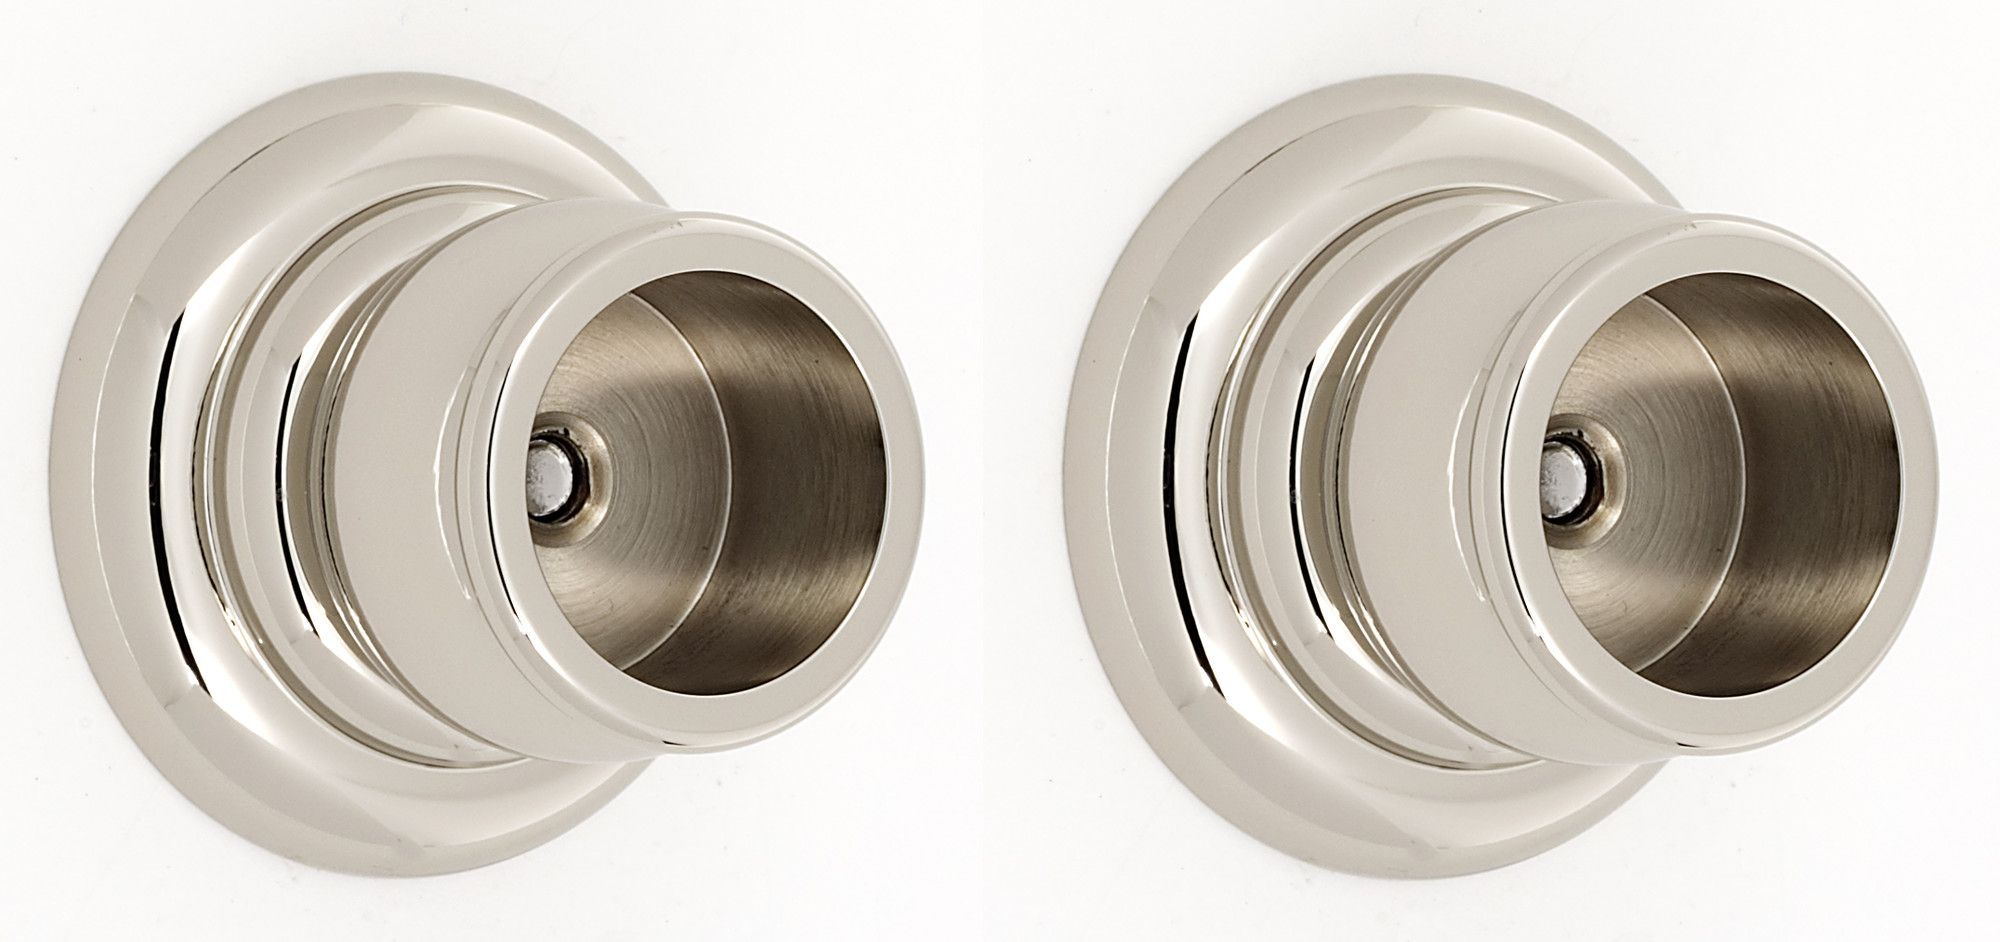 Shower Rod Bracket | Products | Pinterest | Shower rod and Products